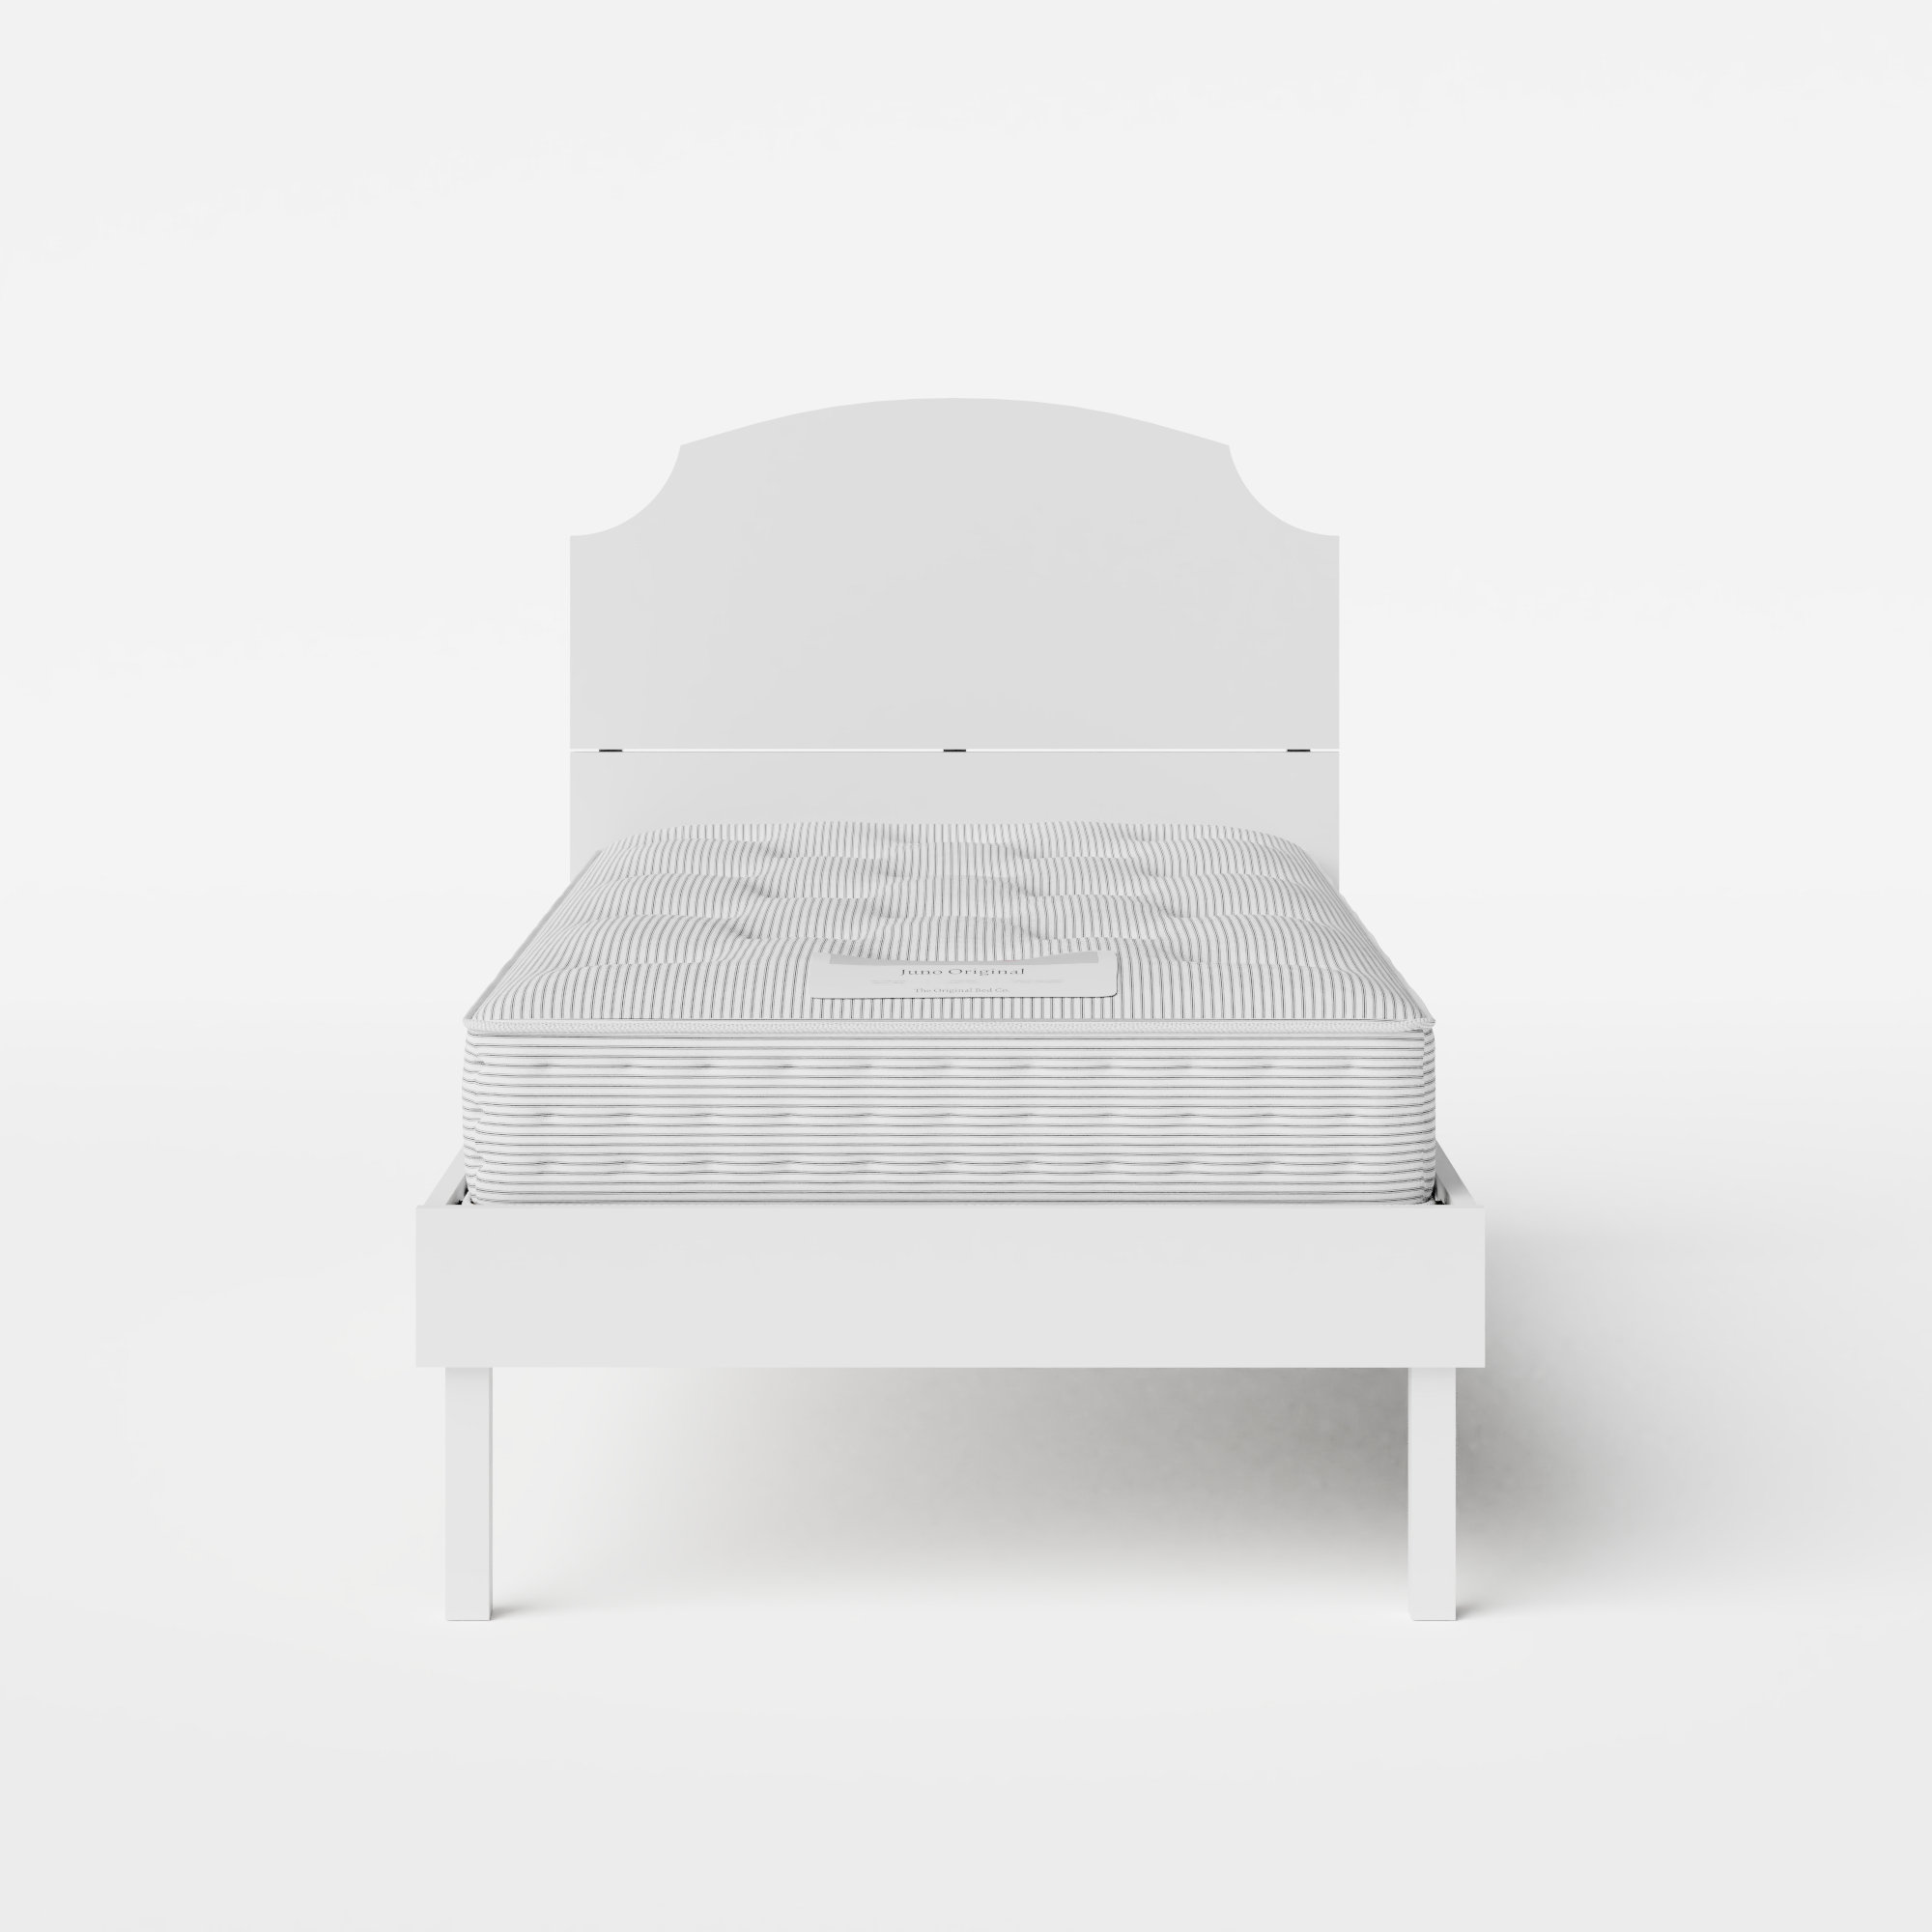 Kobe Painted single painted wood bed in white with Juno mattress